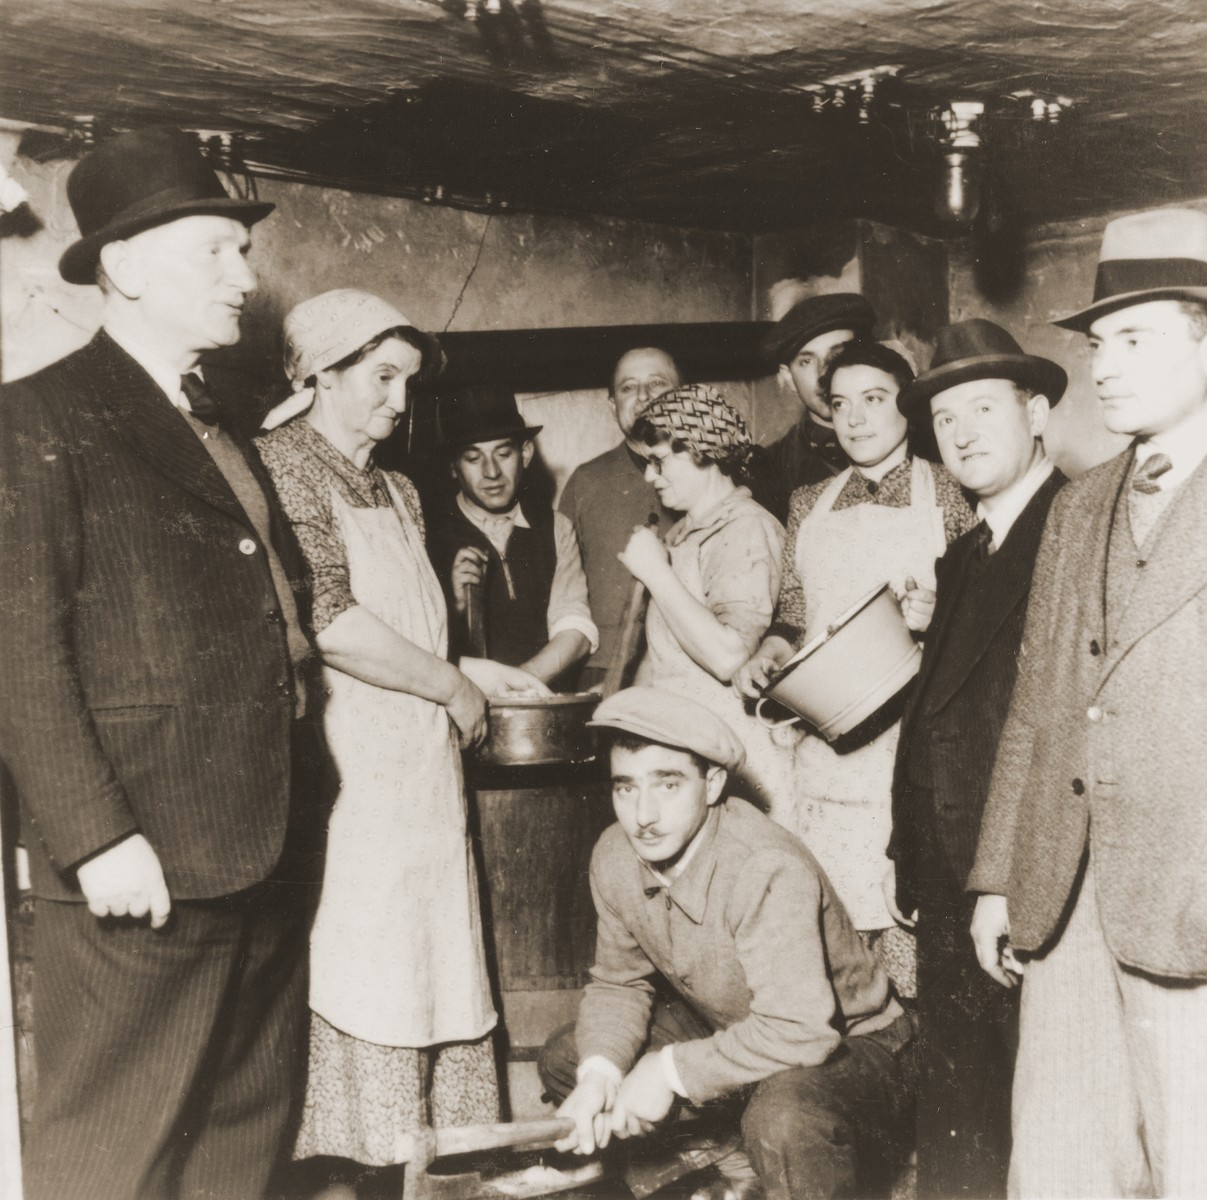 Jewish refugees from the Kladovo transport in a makeshift kitchen on board one of the vessels in Kladovo harbor.